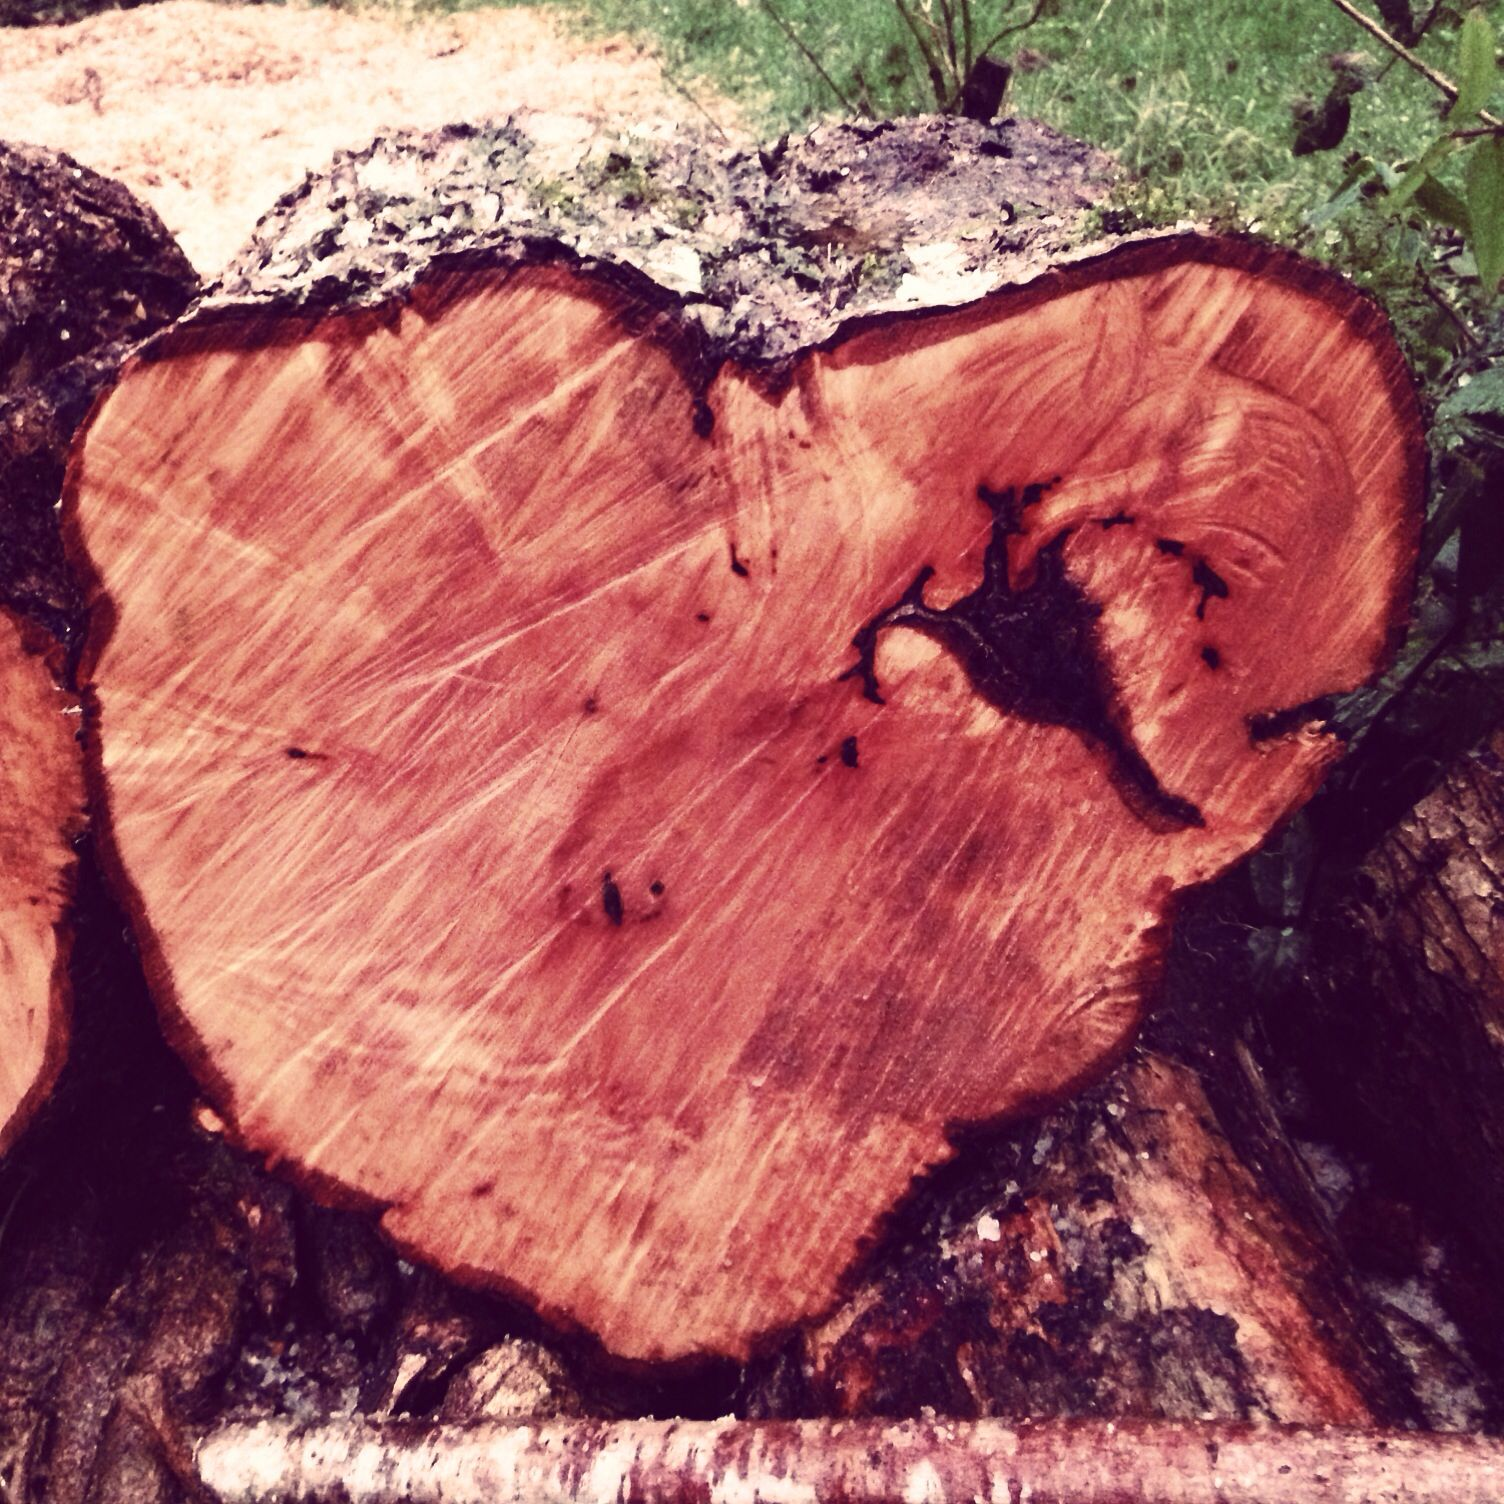 Happy Valentines Day from www.handmadeinblighty.com Love this natural heart shaped field maple log :)